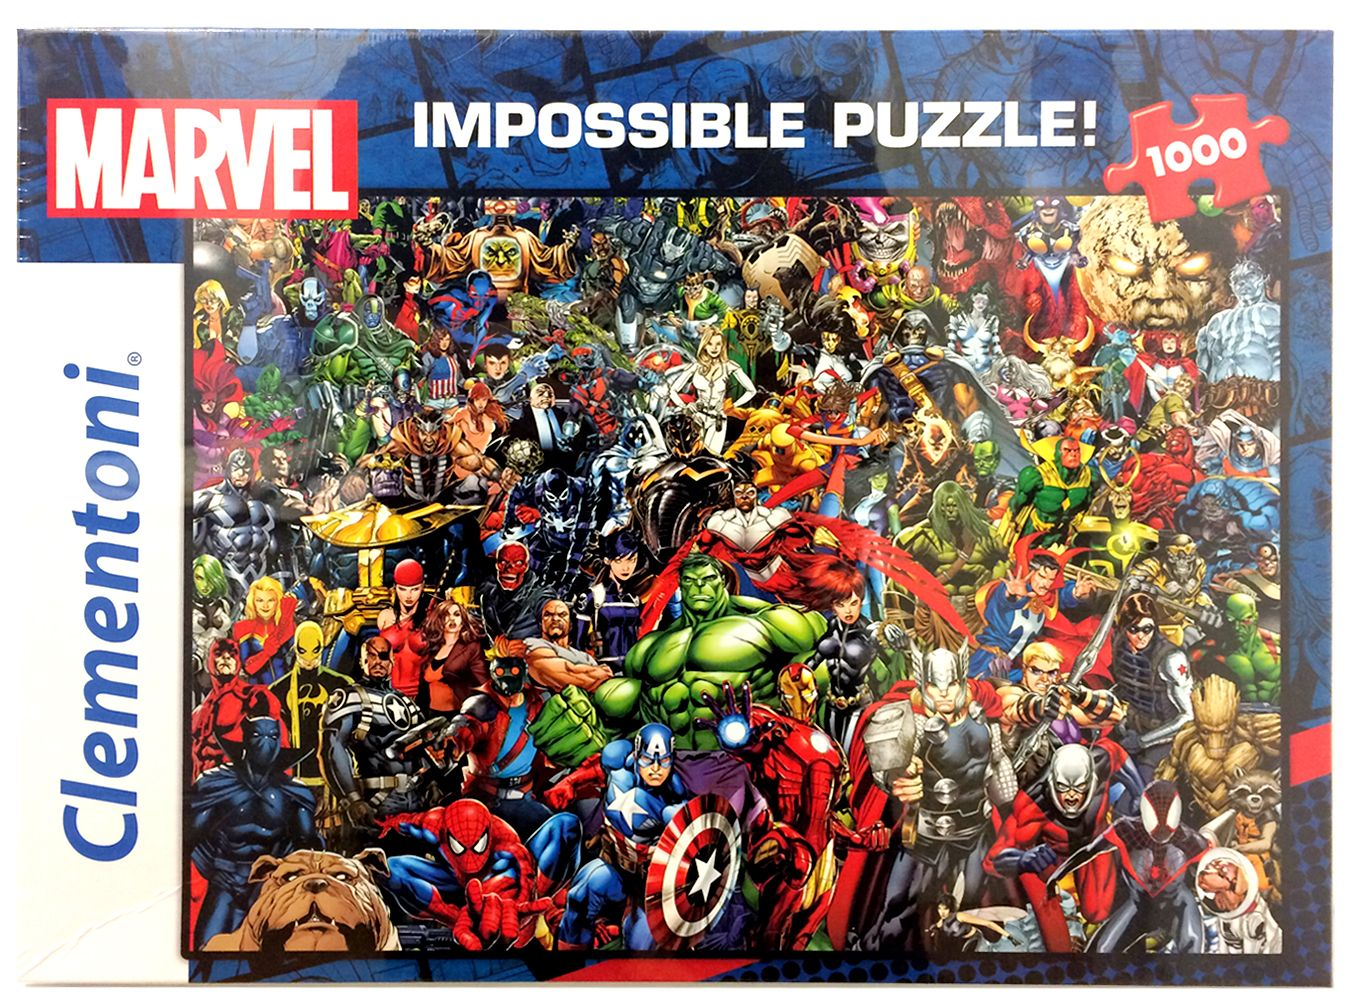 real helicopter kits with Marvel Avengers Super Heroes Impossible 1000 Pcs Jigsaw Puzzle Adults Xmas Gift 3242 P on M1114 HMMWV additionally Amazing Cars Hd Wallpapers further Personal Helicopter Market Round Up The Mosquito together with B00FZ4O8RW also 93a325 1400 B25 Green Rtf 24g.